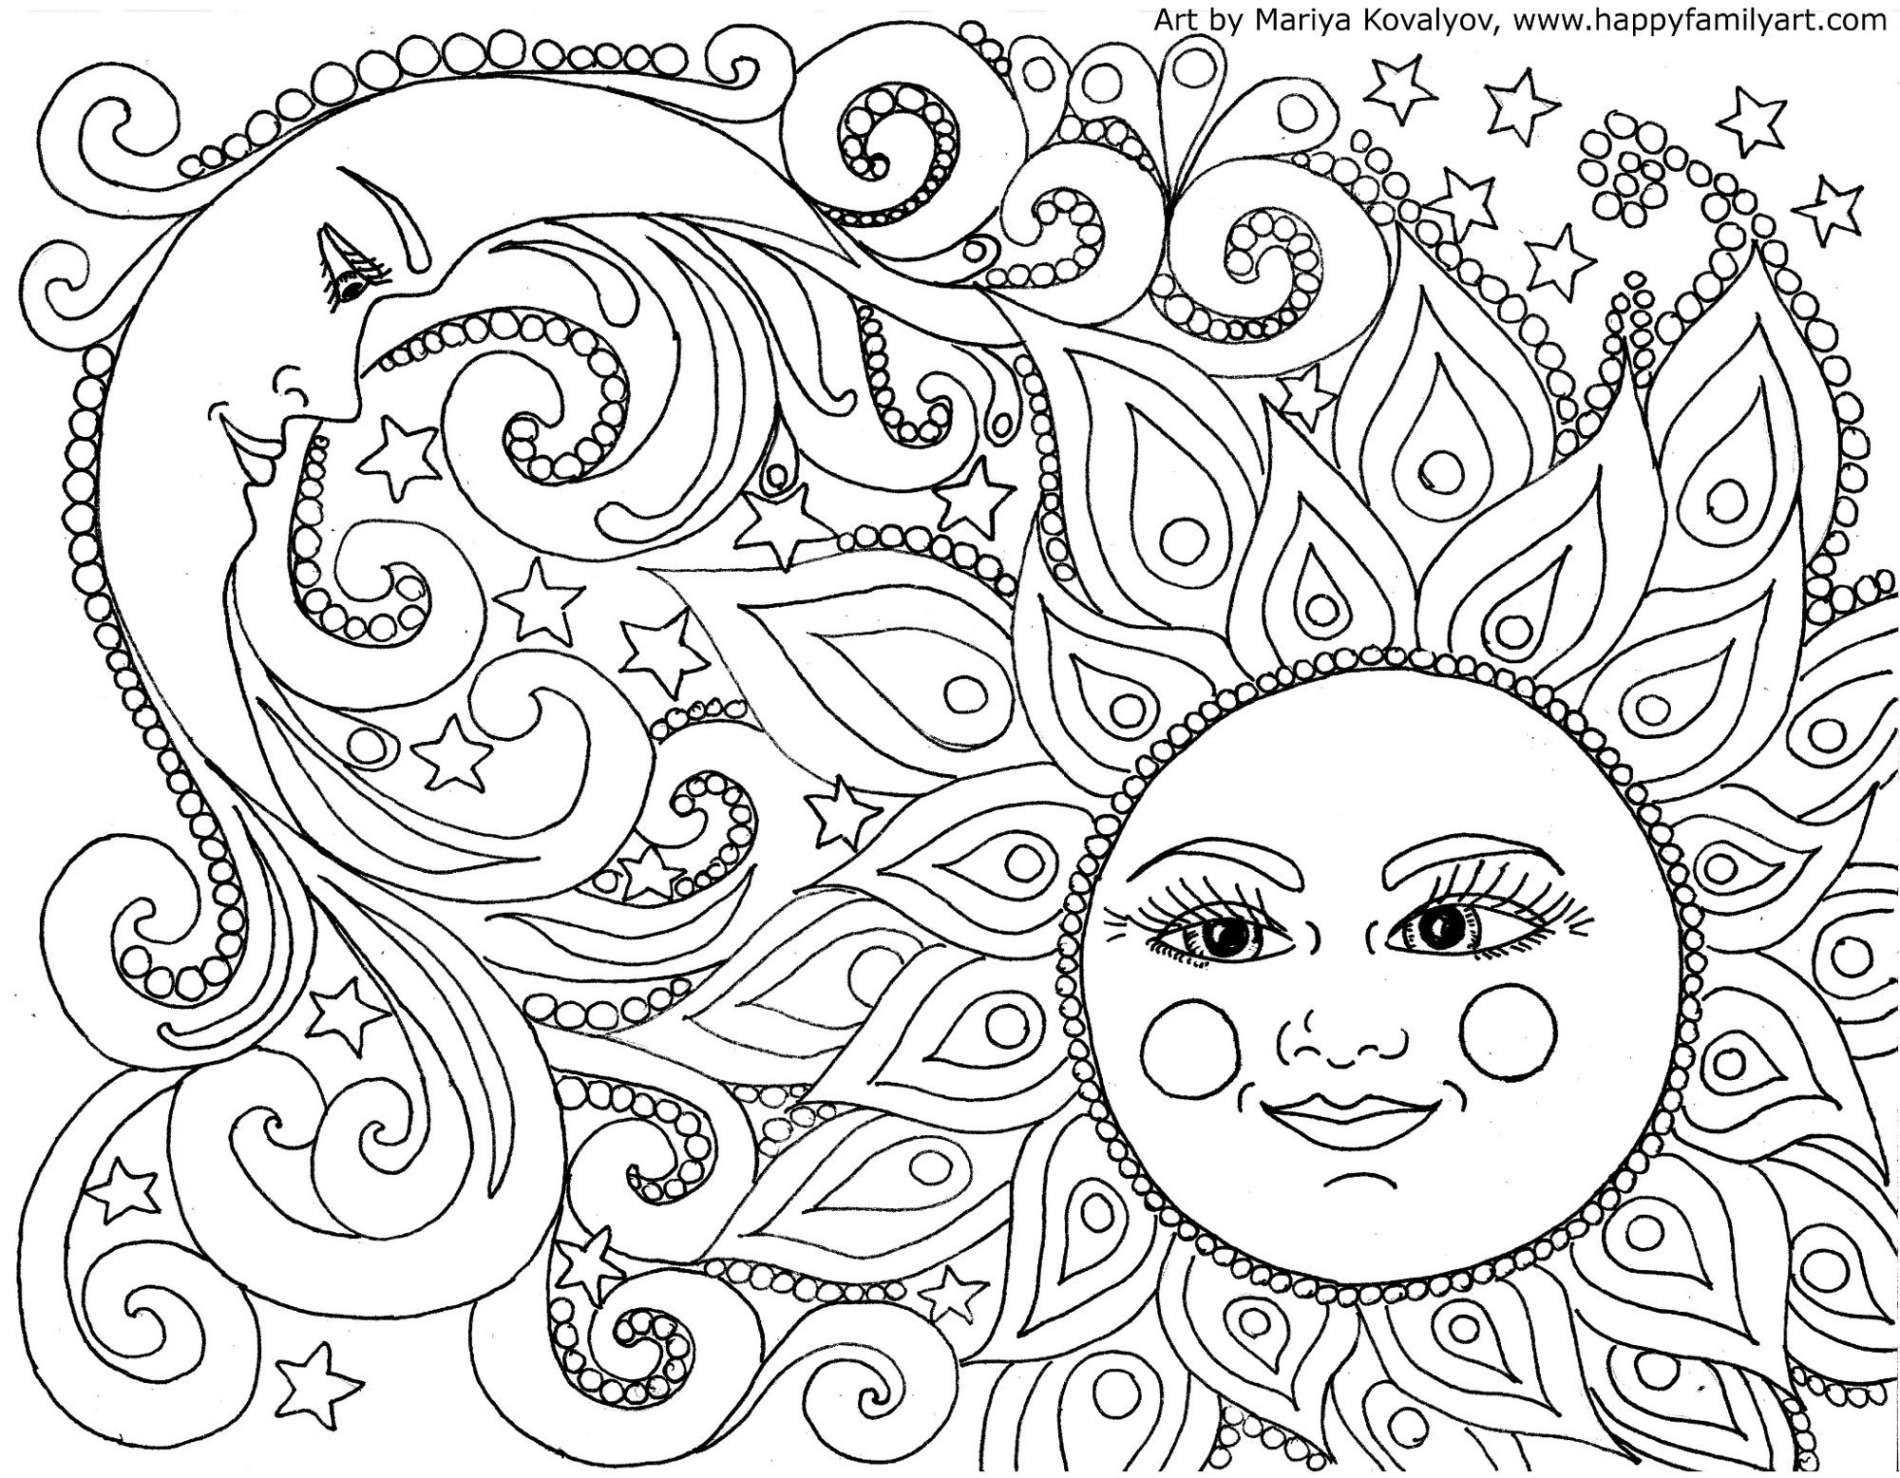 free bible coloring pages to print Collection-Free Printable Christmas Coloring Pages for Sunday School Christmas Coloring Pages Free Grinch Best Best Awesome 9-j